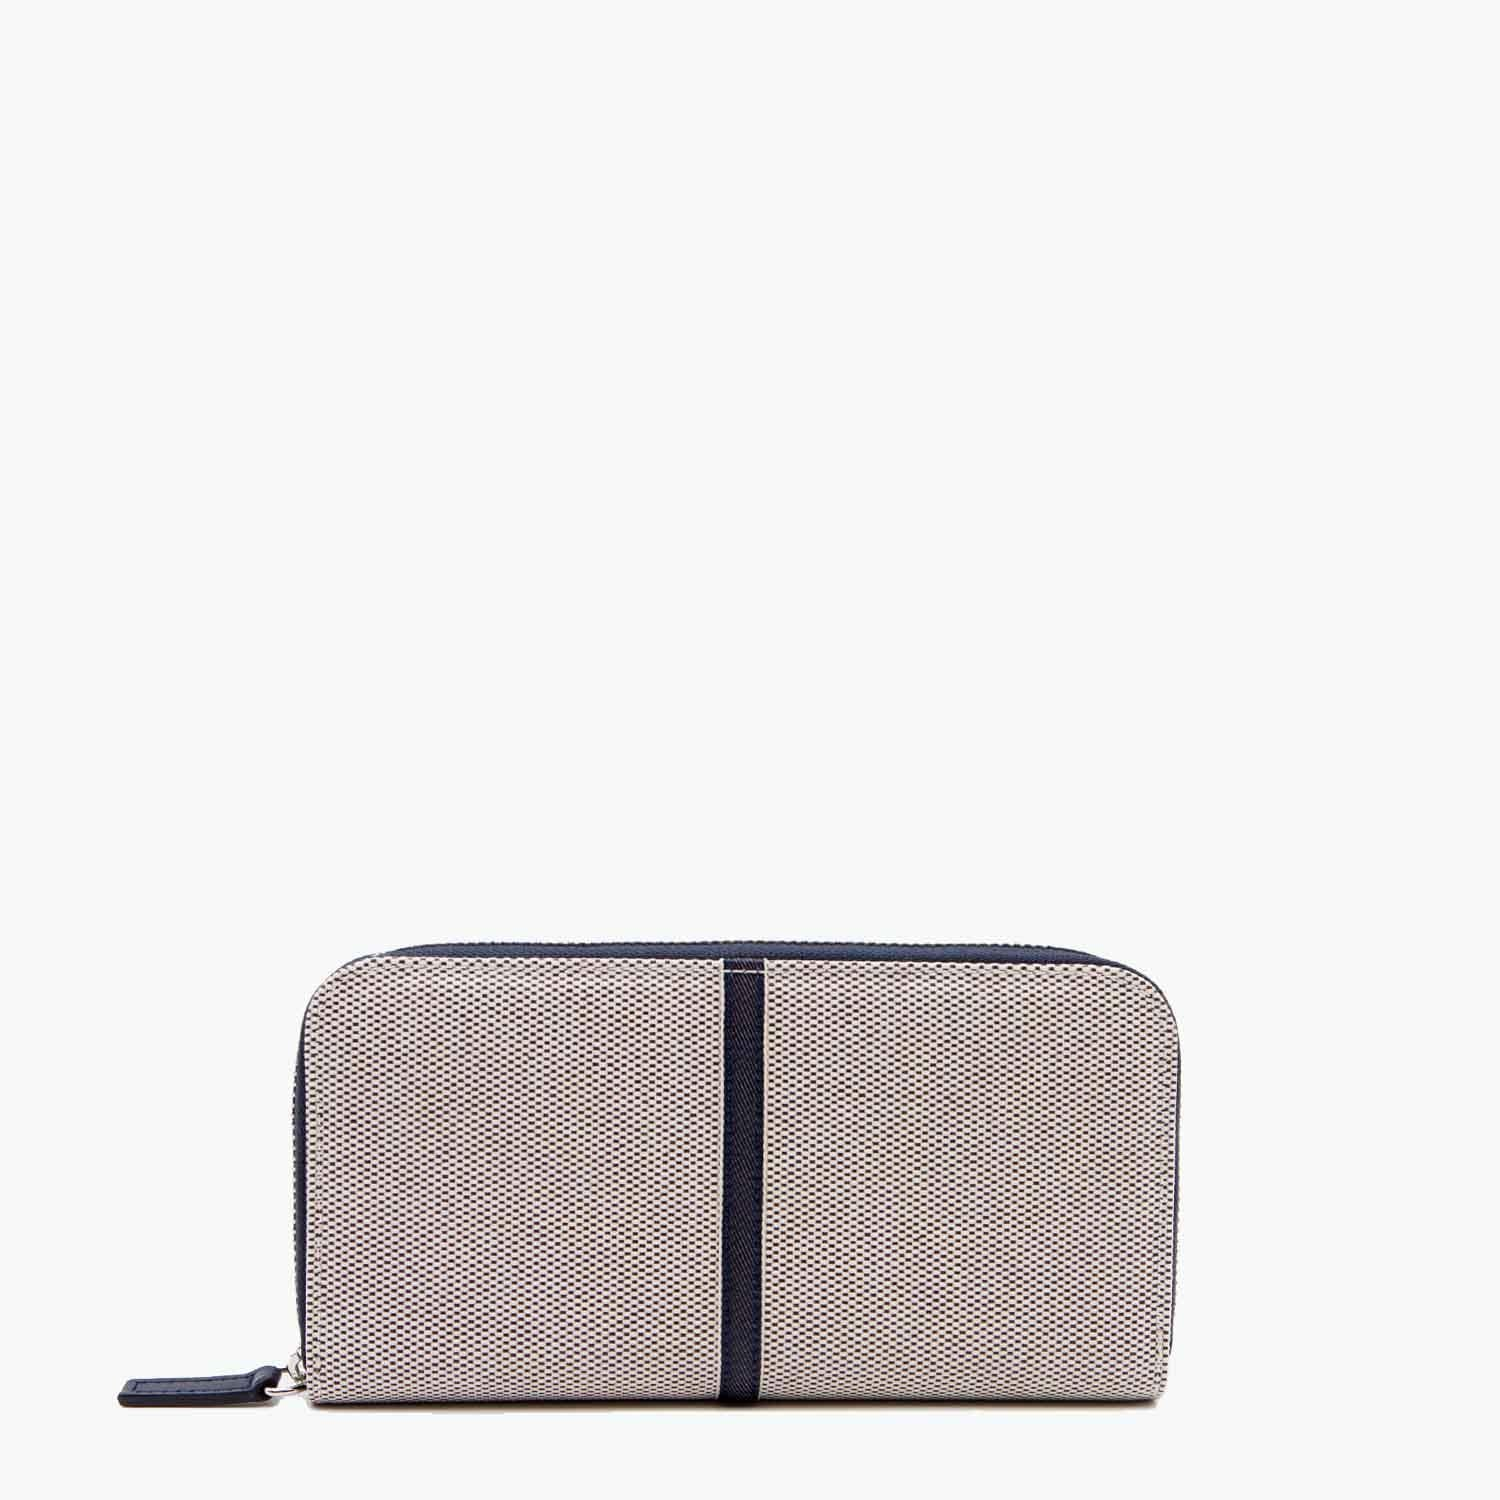 Mia Wallet Cotton Tweed and Leather - Nosetta